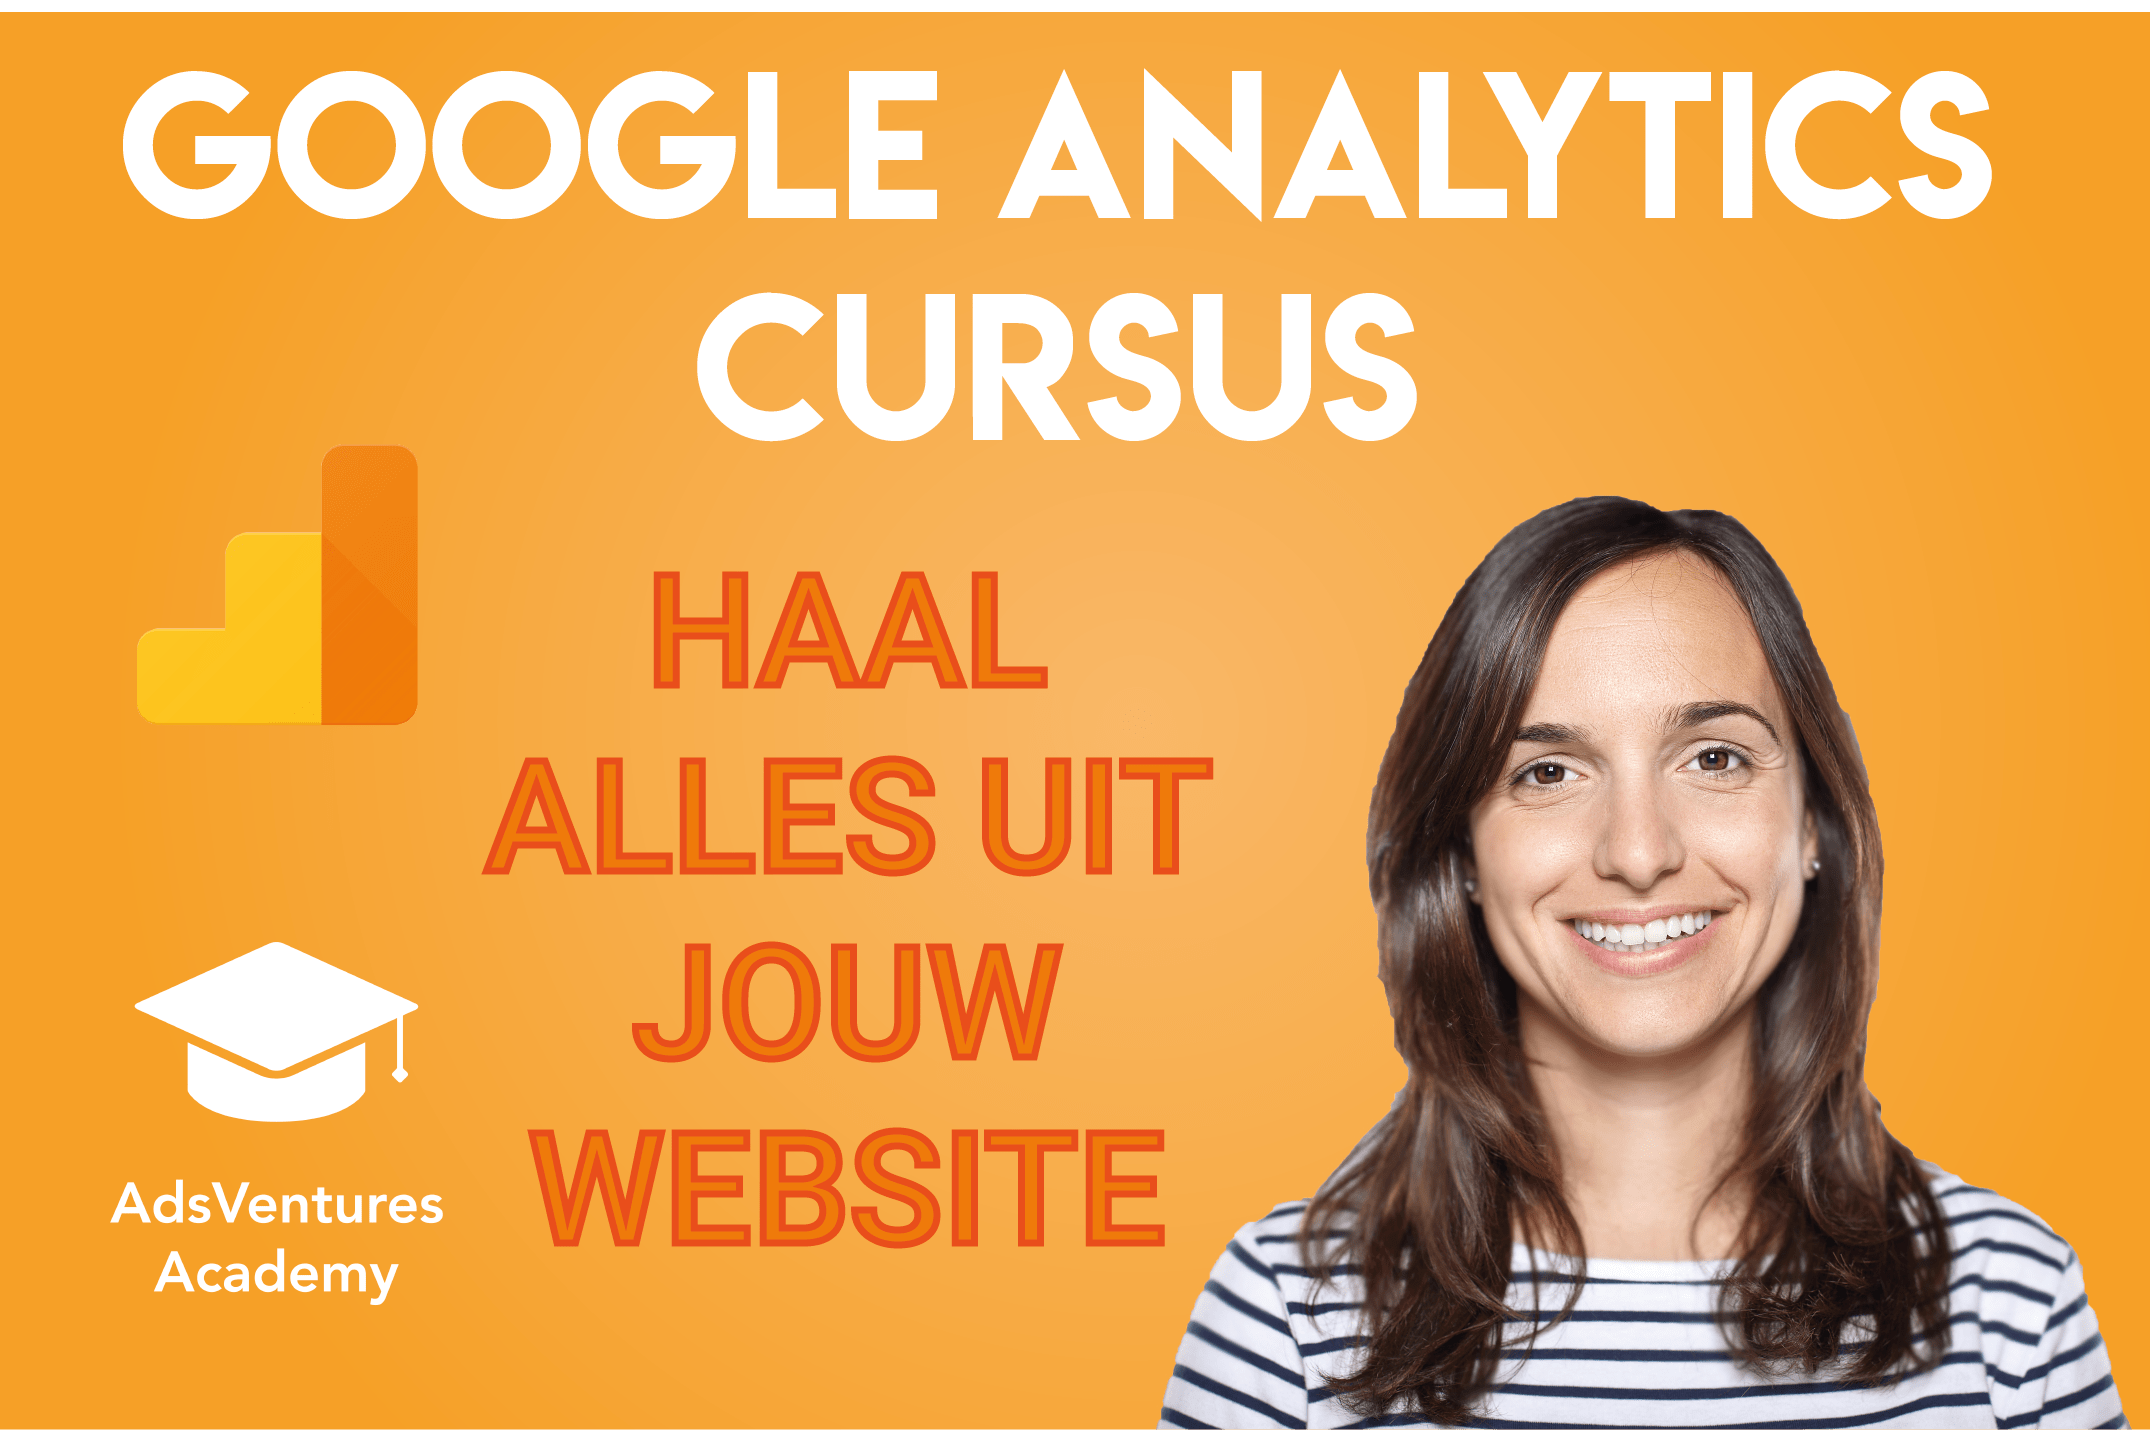 Leer alles over Google Analytics